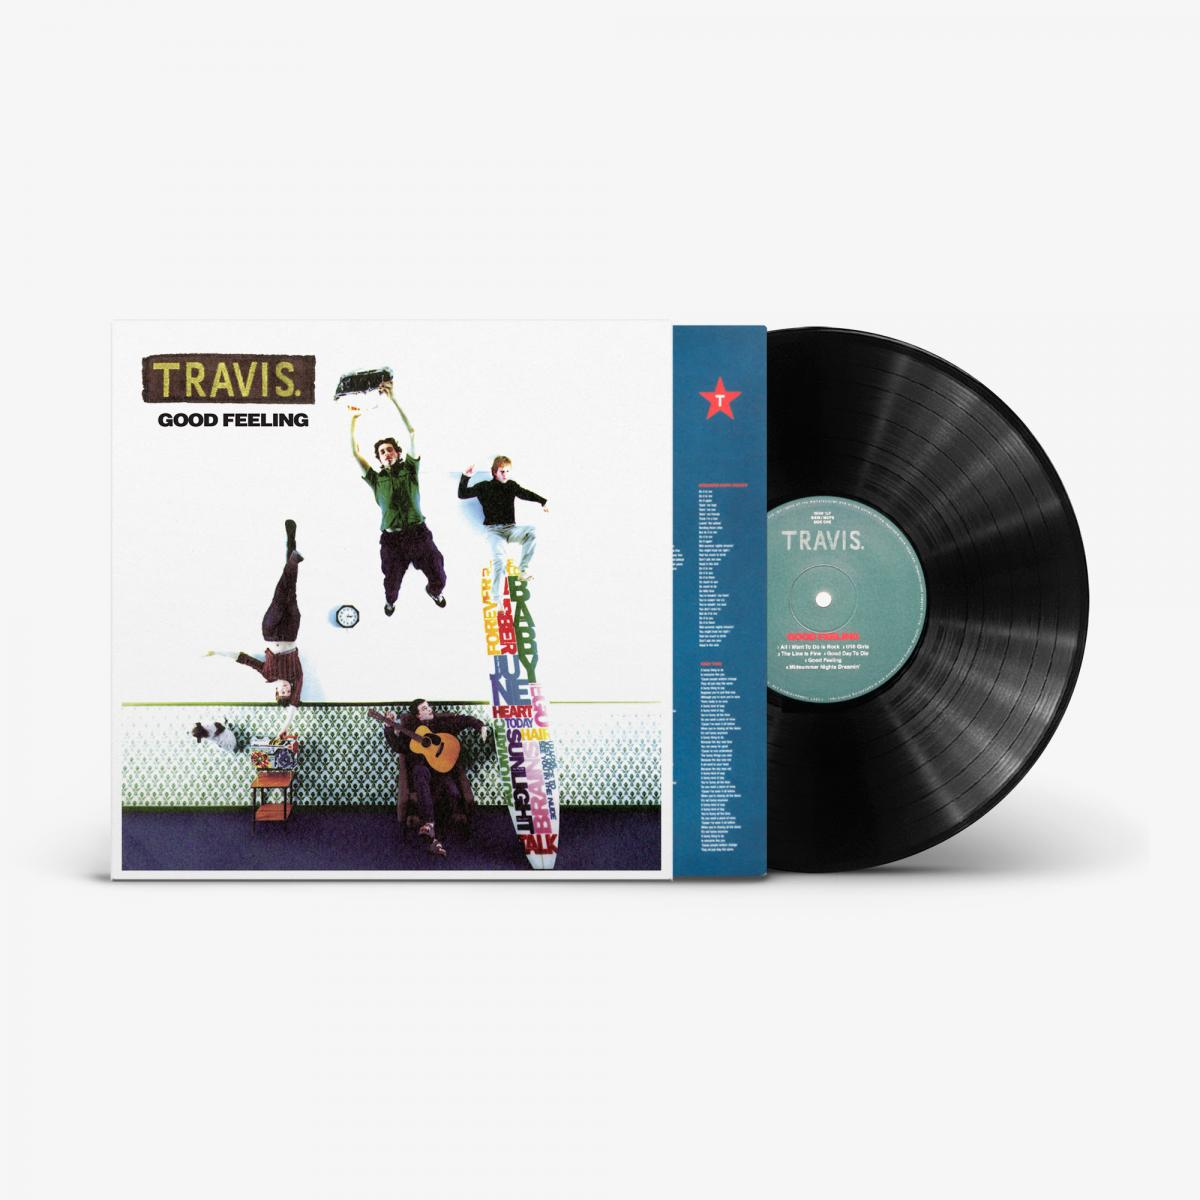 Travis to reissue 1997 debut album 'Good Feeling' on vinyl - April 2nd via Craft Recordings